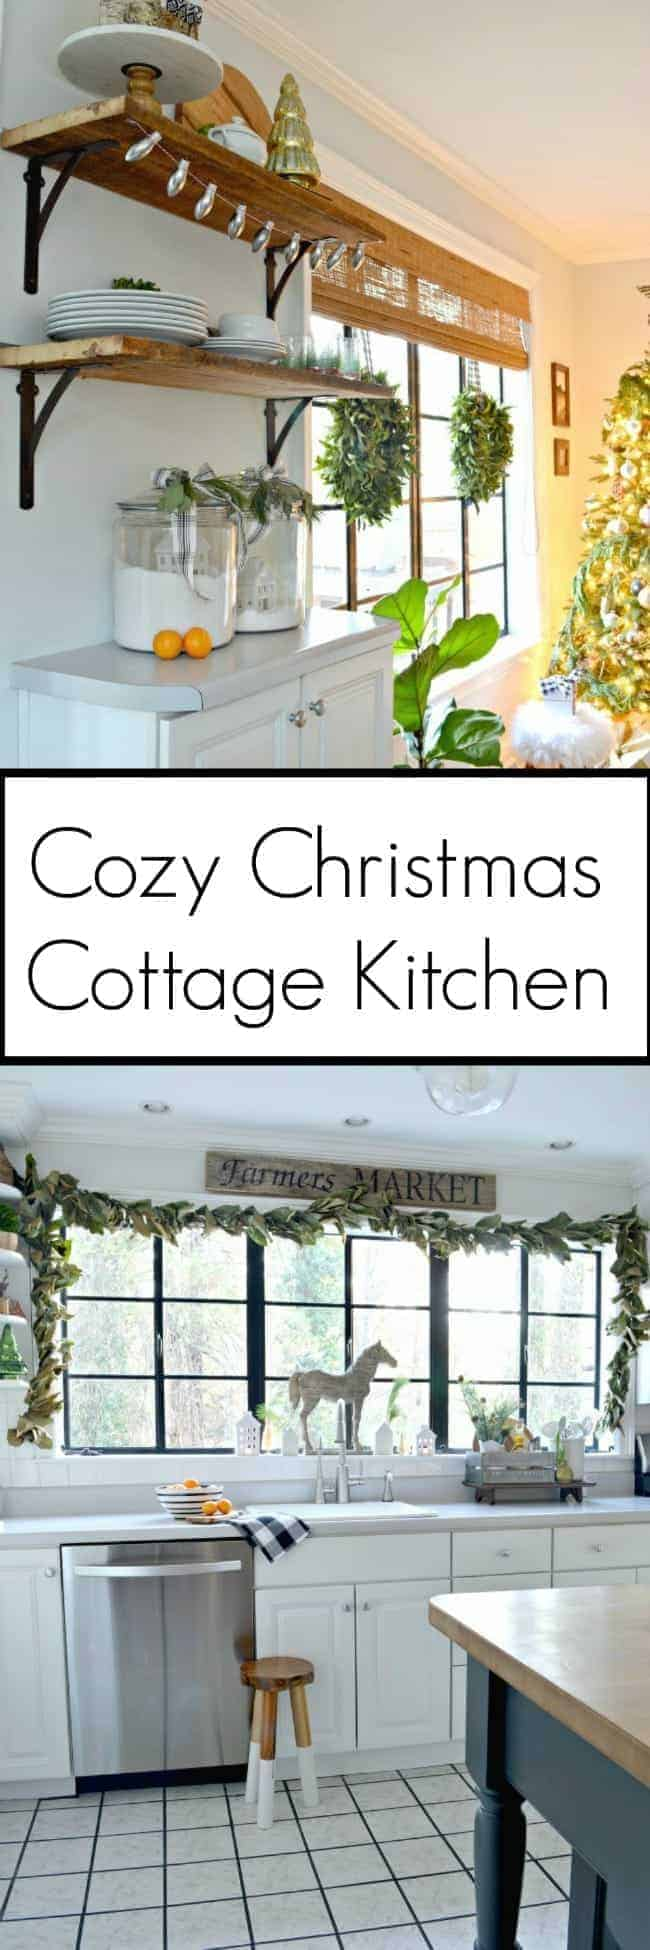 How to create a cozy cottage Christmas kitchen by using farmhouse touches like fresh greenery from the yard and other natural touches.